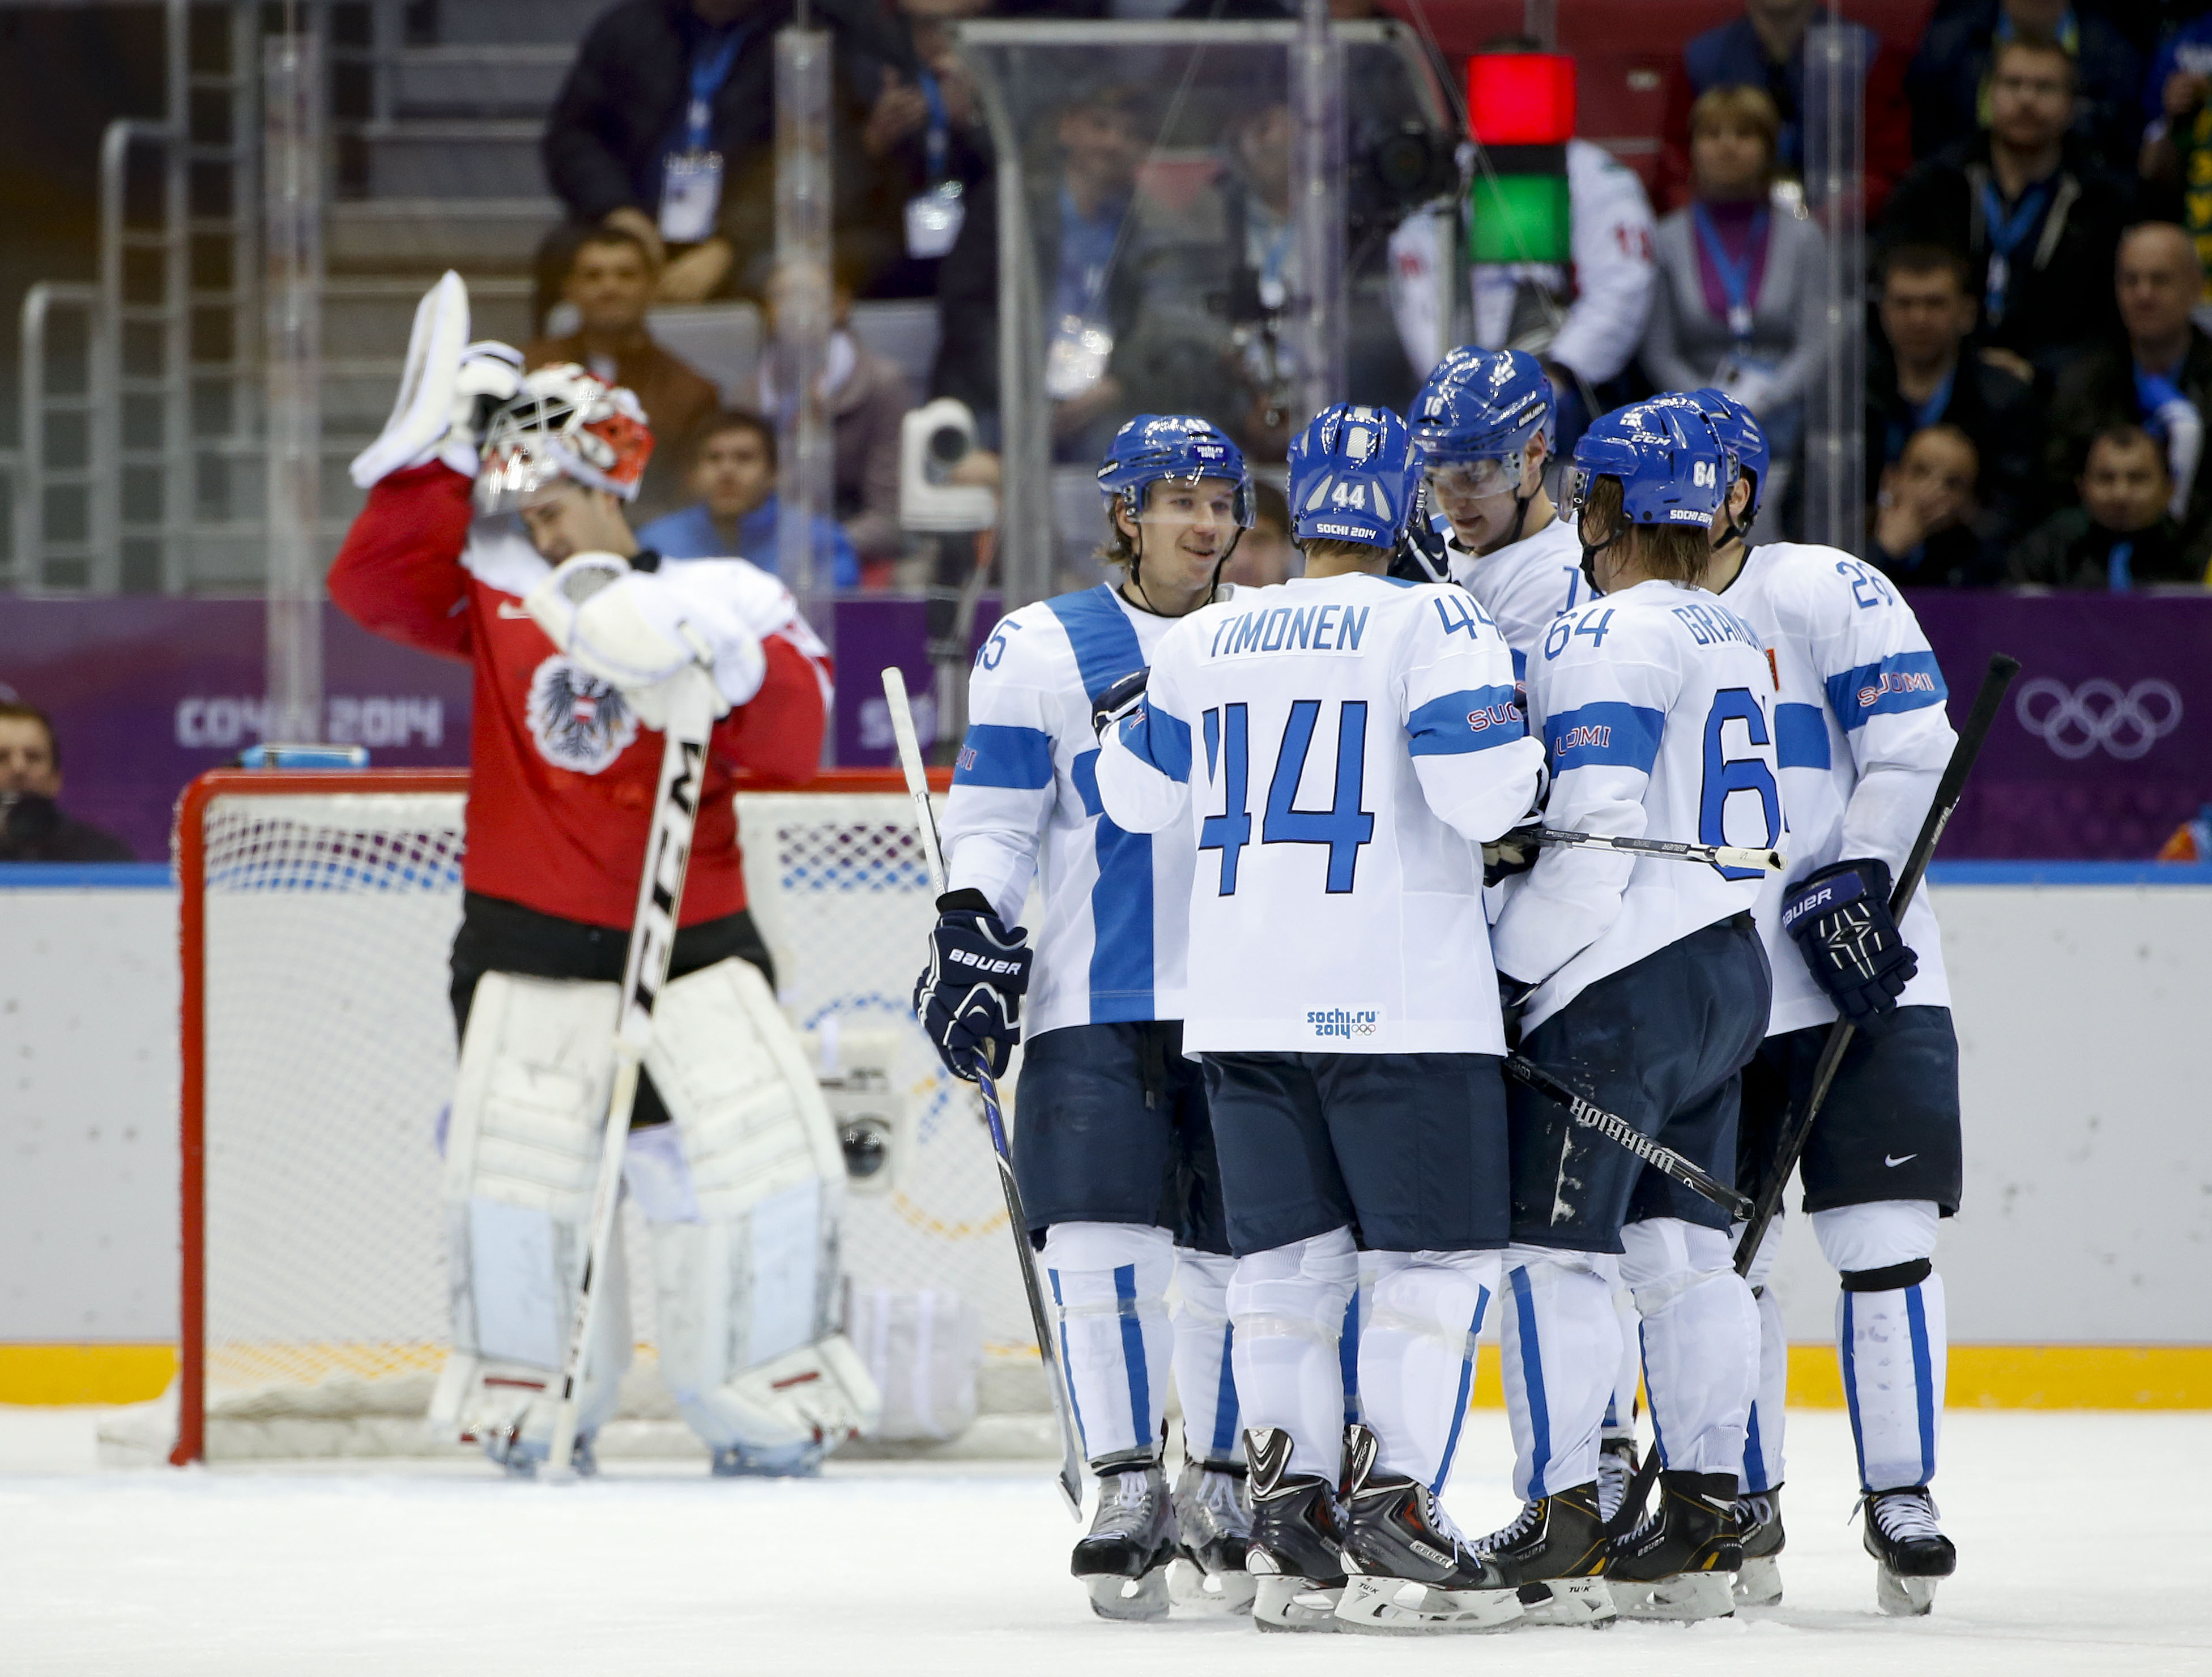 Team Finland celebrates after a third period goal against Austria in a men's ice hockey game at the 2014 Winter Olympics, Thursday, Feb. 13, 2014, in Sochi, Russia. Finland won 8-4. (AP Photo/Julio Cortez)